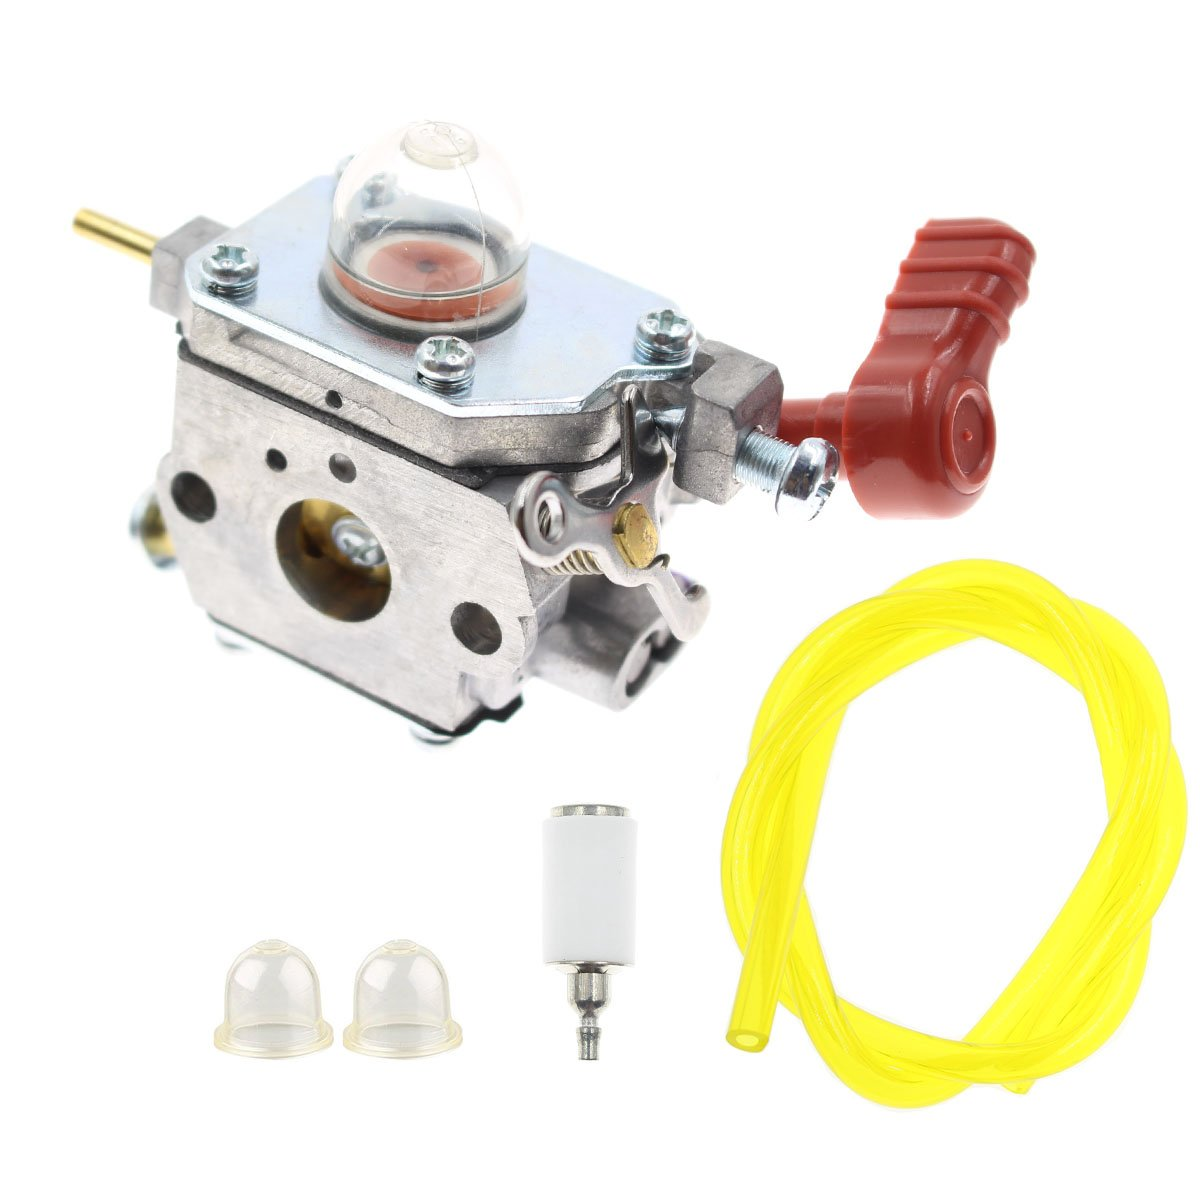 Goodeal Carburetor 753 06288 C1u P27 For Zama Craftsman Bolens 1225 Wiring Diagram Troybilt Yard Machine Trimmer Carb Garden Outdoor